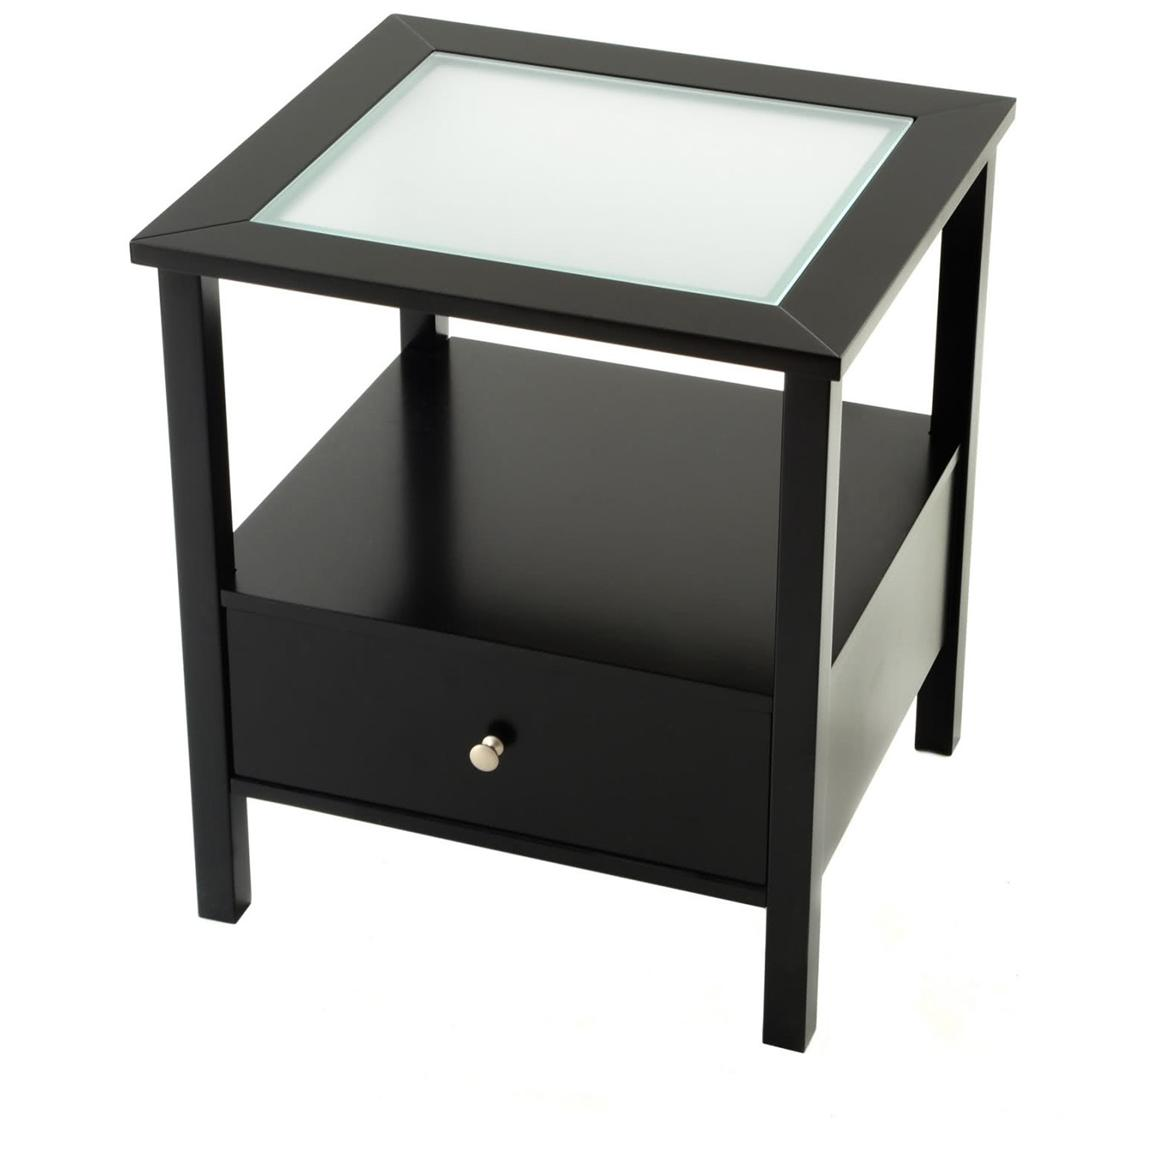 perfect small end table with drawer homesfeed black wooden and glass top doors wood plans traditional side tables white metal accent piece nesting set console height brown wicker